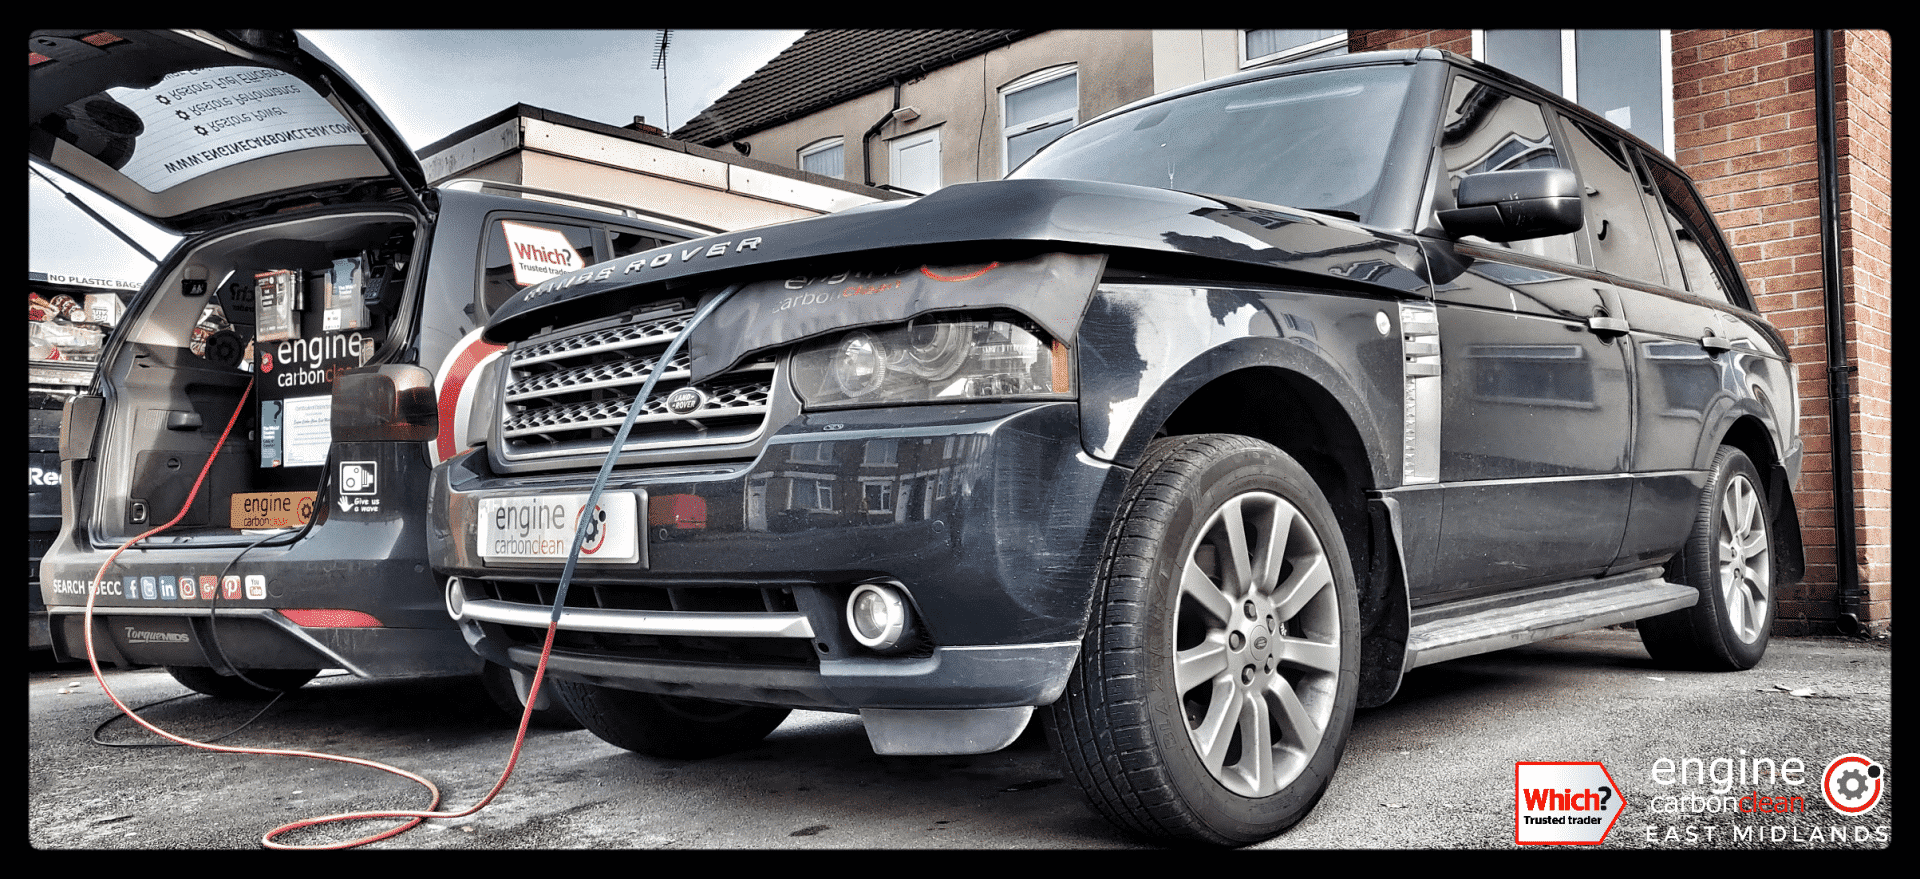 Diagnostic Consultation and Engine Carbon Clean - Range Rover Vogue 4.2 V8 (2006 - 118,936 miles)